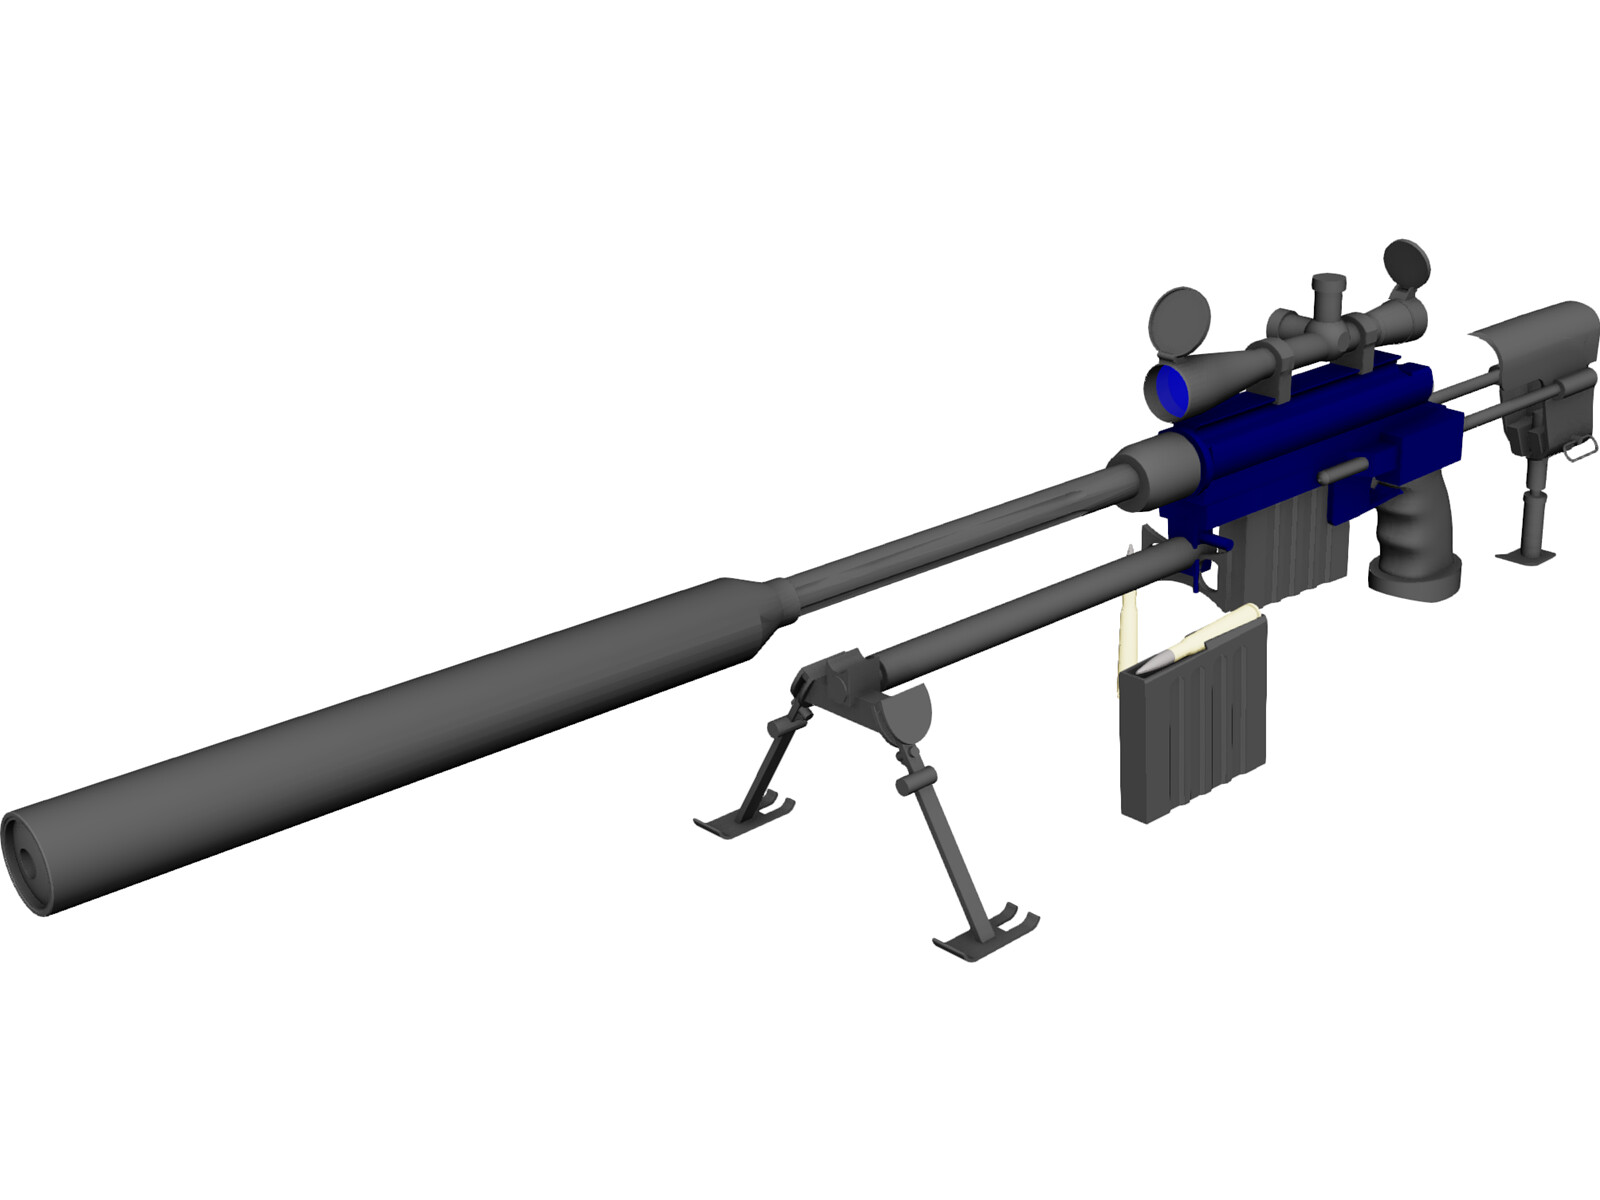 50 Cal Rifle with Suppressor